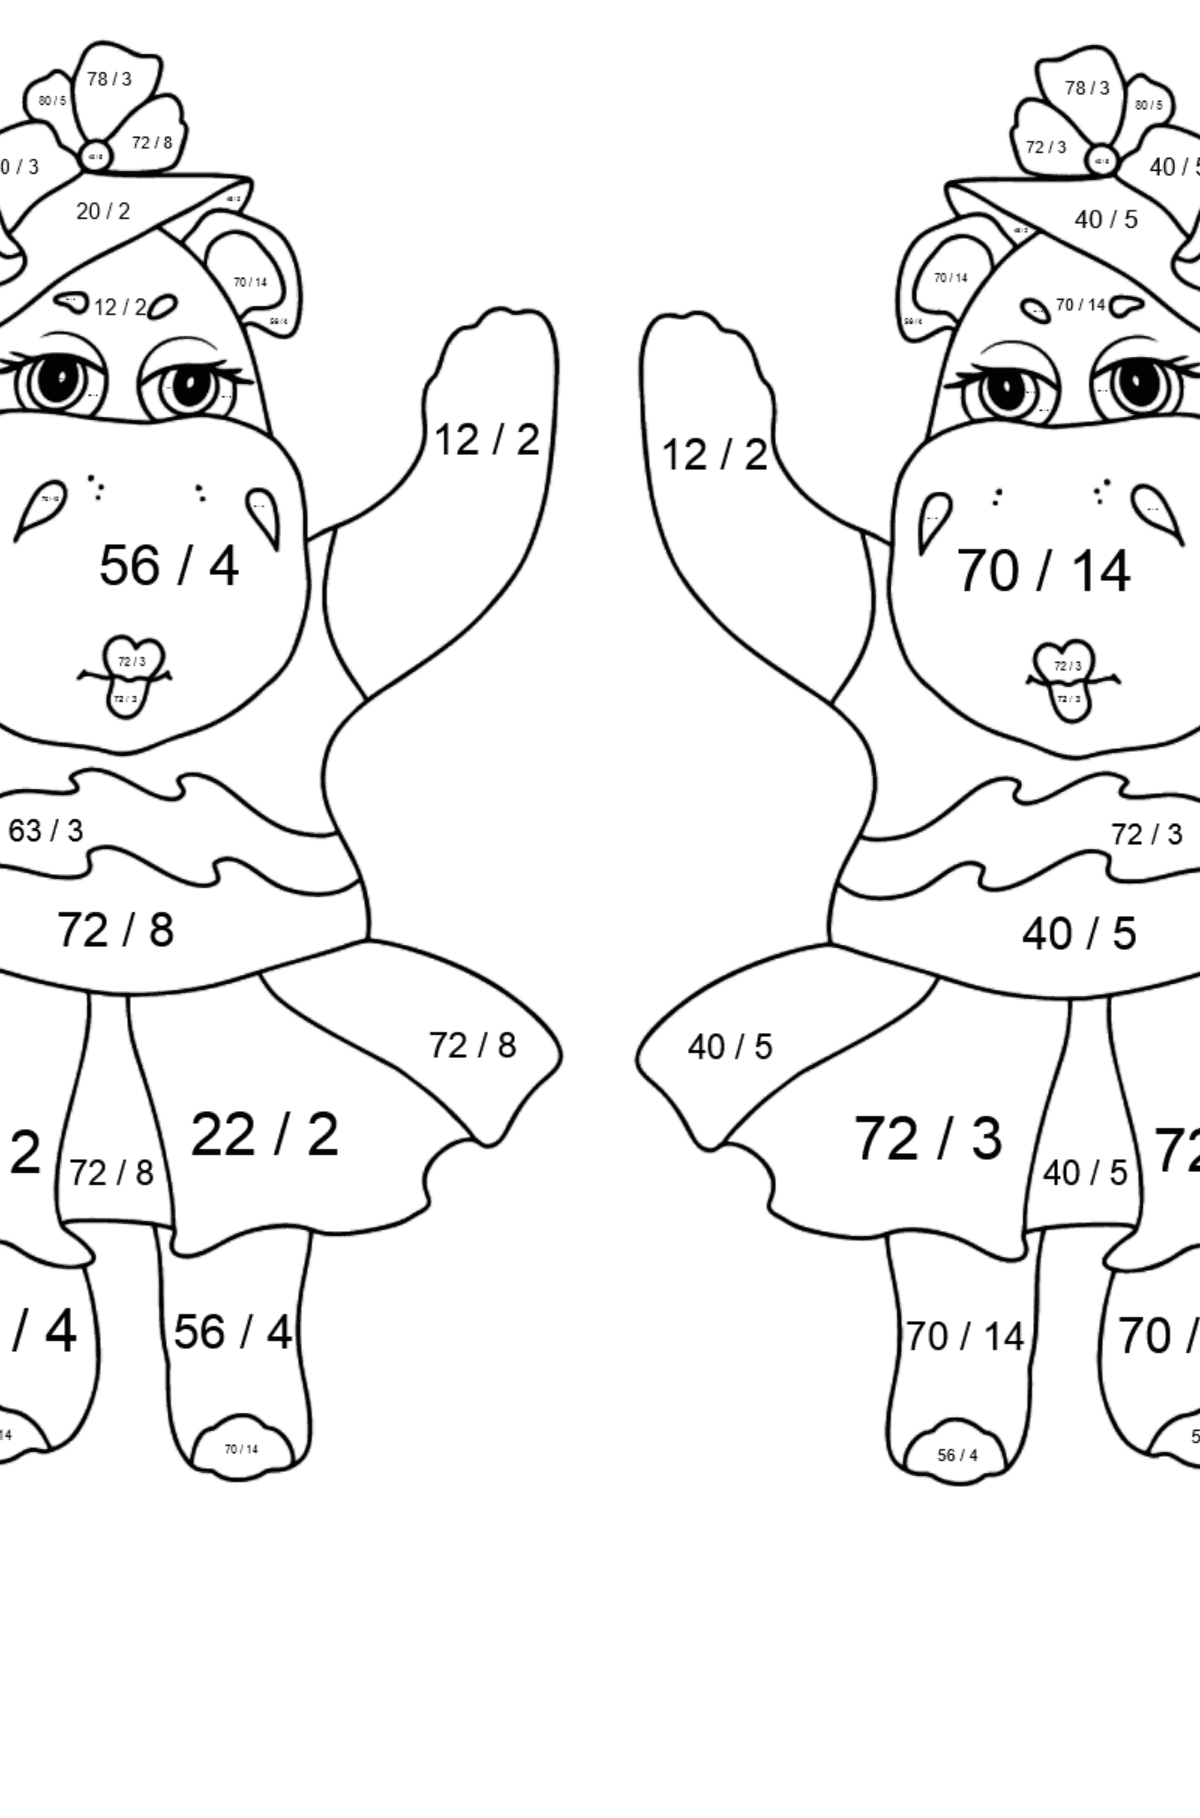 Coloring Page - Hippos are Harvesting the Crops - Math Coloring - Division for Kids